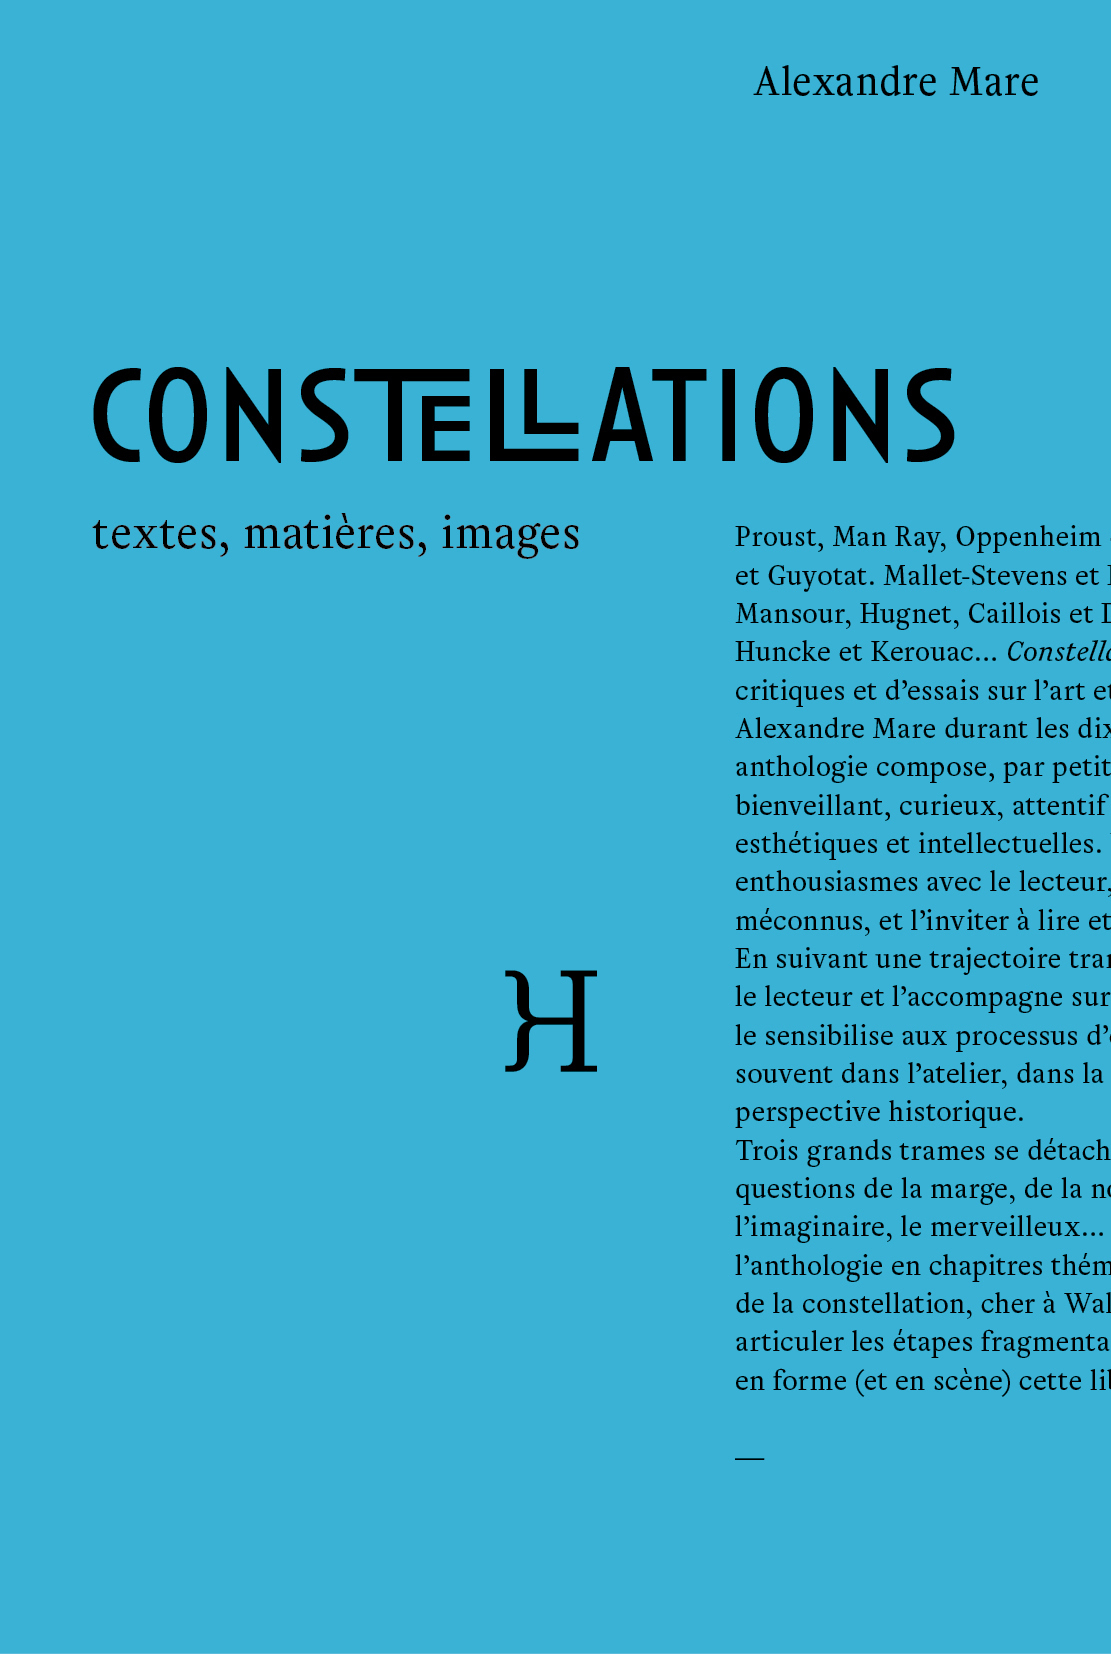 CONSTELLATIONS. TEXTES, MATIERES, IMAGES